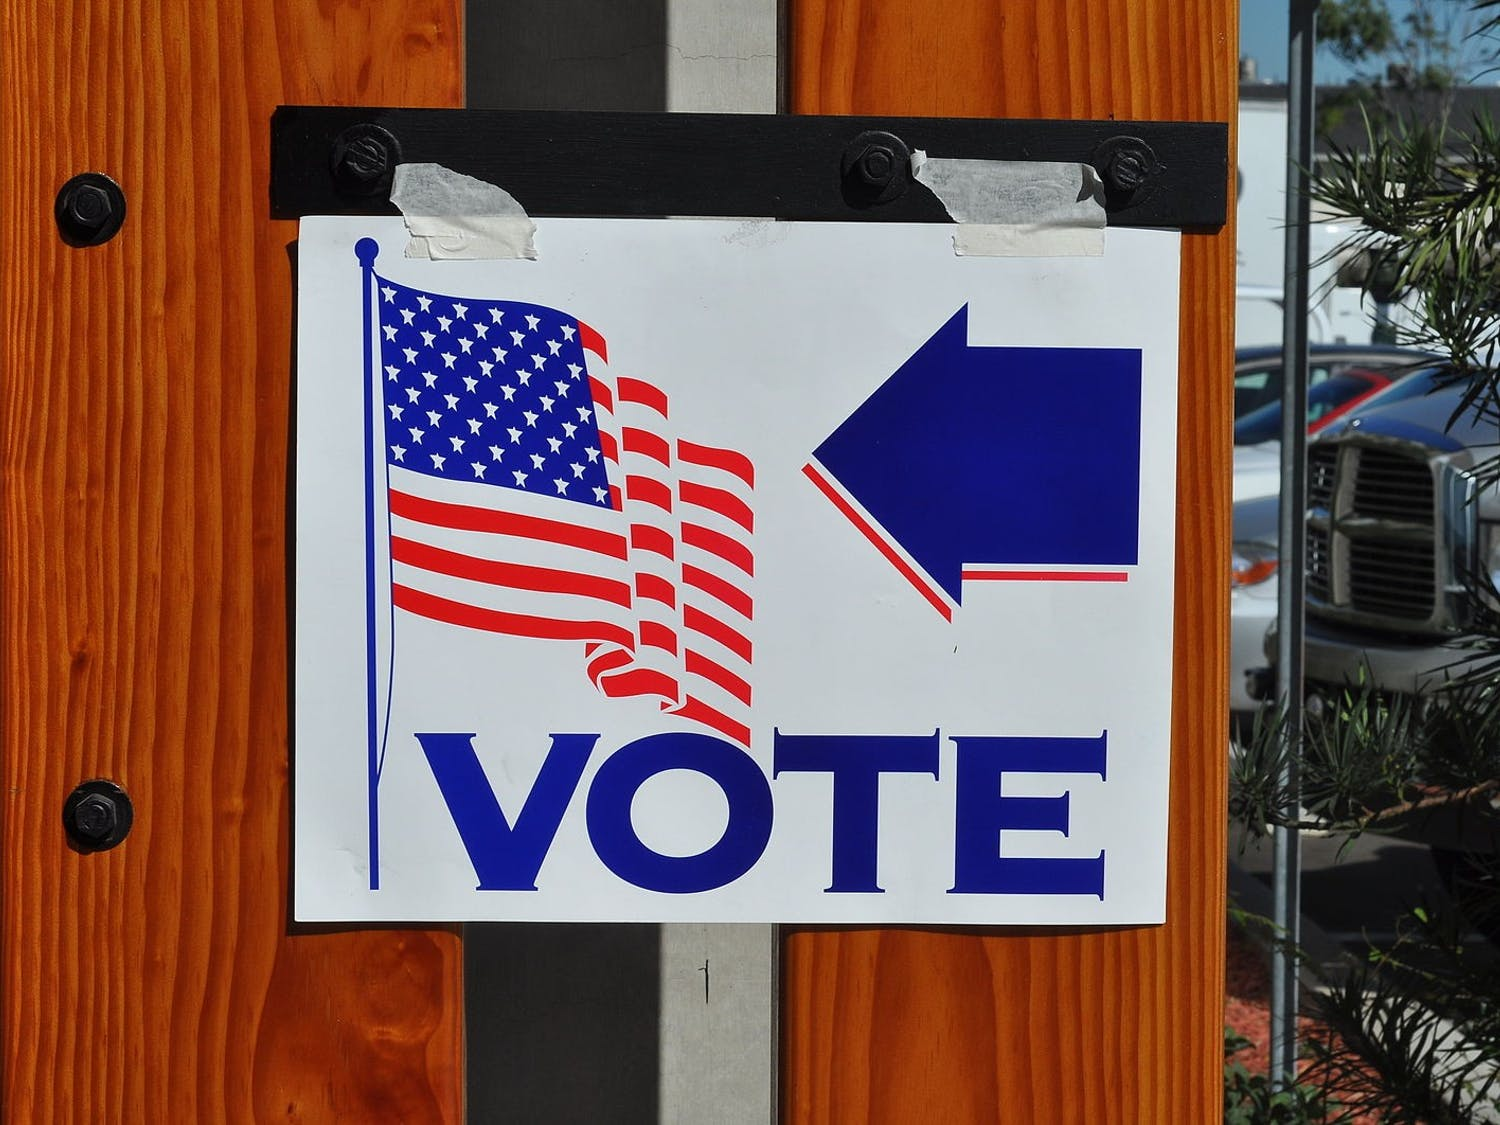 Before you choose your candidate, do some research. Try to separate yourself from the undoubtedly millions of voters who cast their ballot on an uneducated guess. Then, vote.